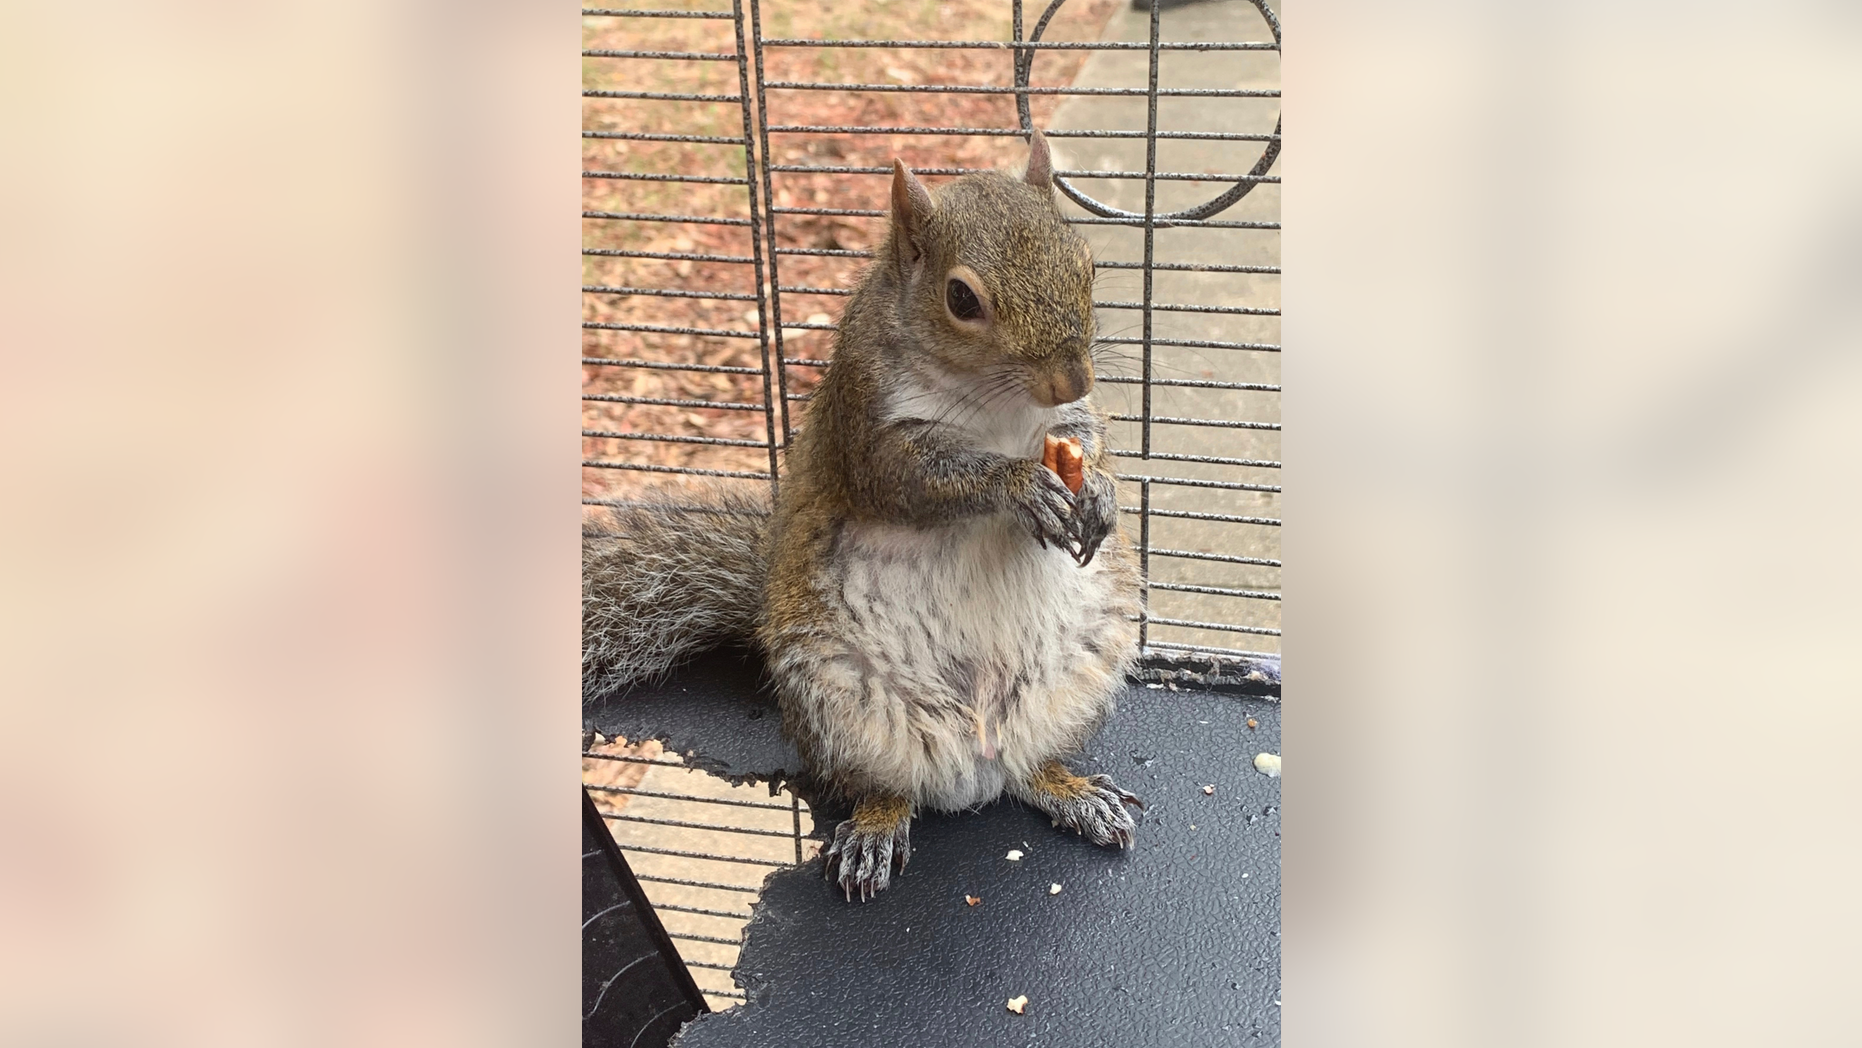 Westlake Legal Group ContentBroker_contentid-0bf01a6df57b4bd1aef139a3cc0daf03 Authorities: Alabama man fed meth to caged 'attack squirrel' fox-news/us/crime fnc/us fnc de1203a6-c850-5dfa-a393-24e5d0efe40a ATHENS, Ala. Associated Press article